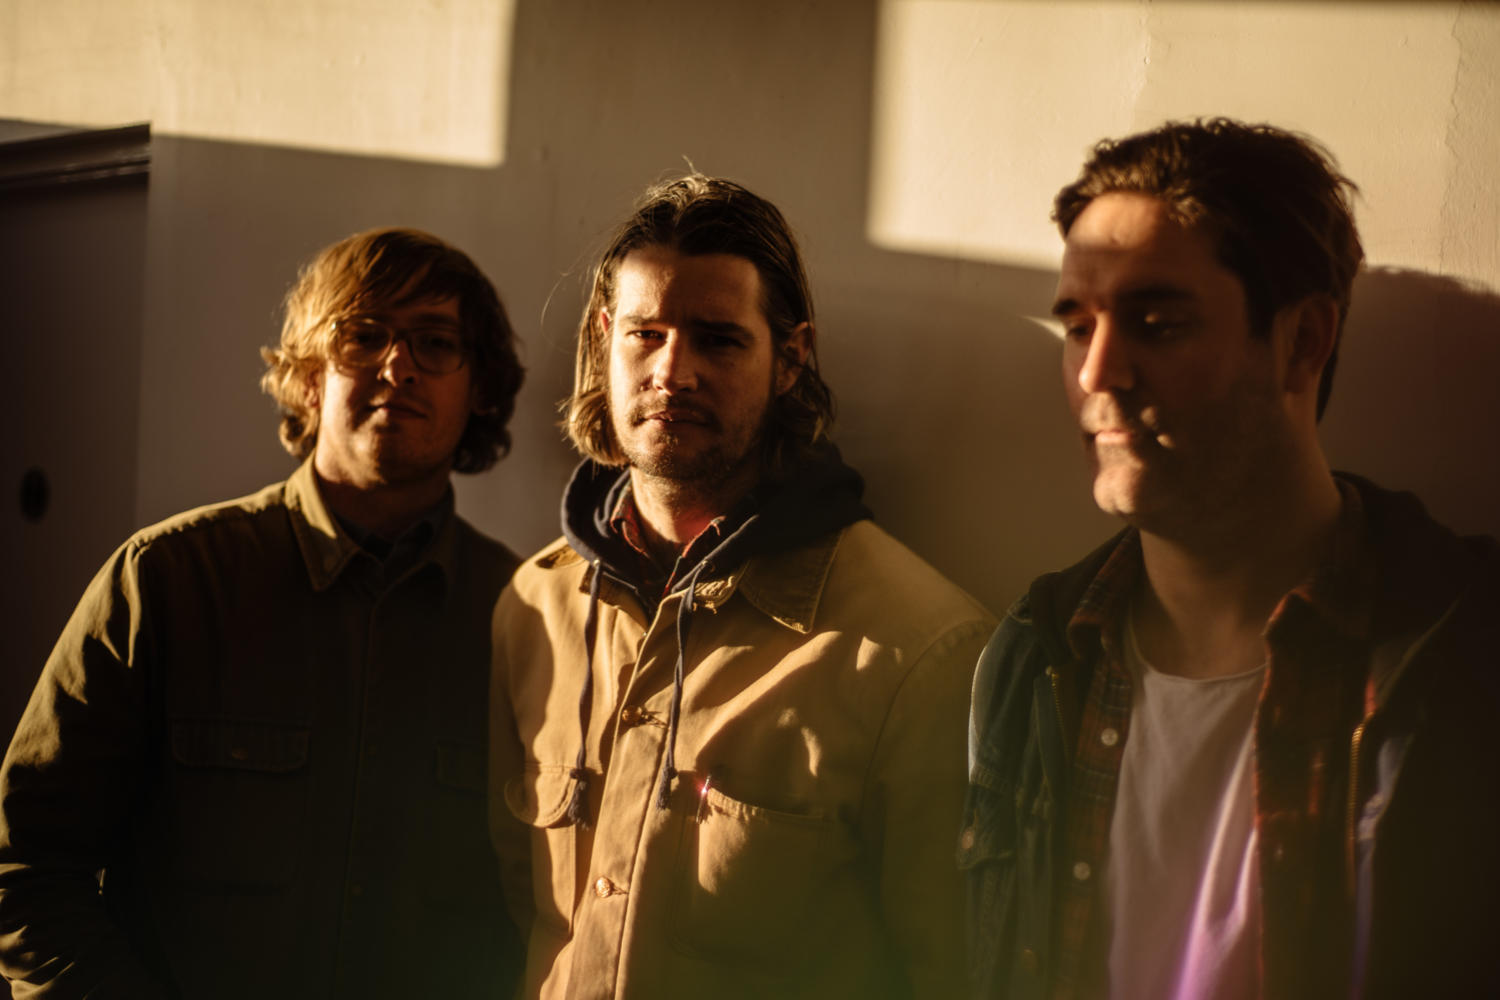 METZ reveal visuals for ferocious track 'Dry Up', from their upcoming rarities compilation